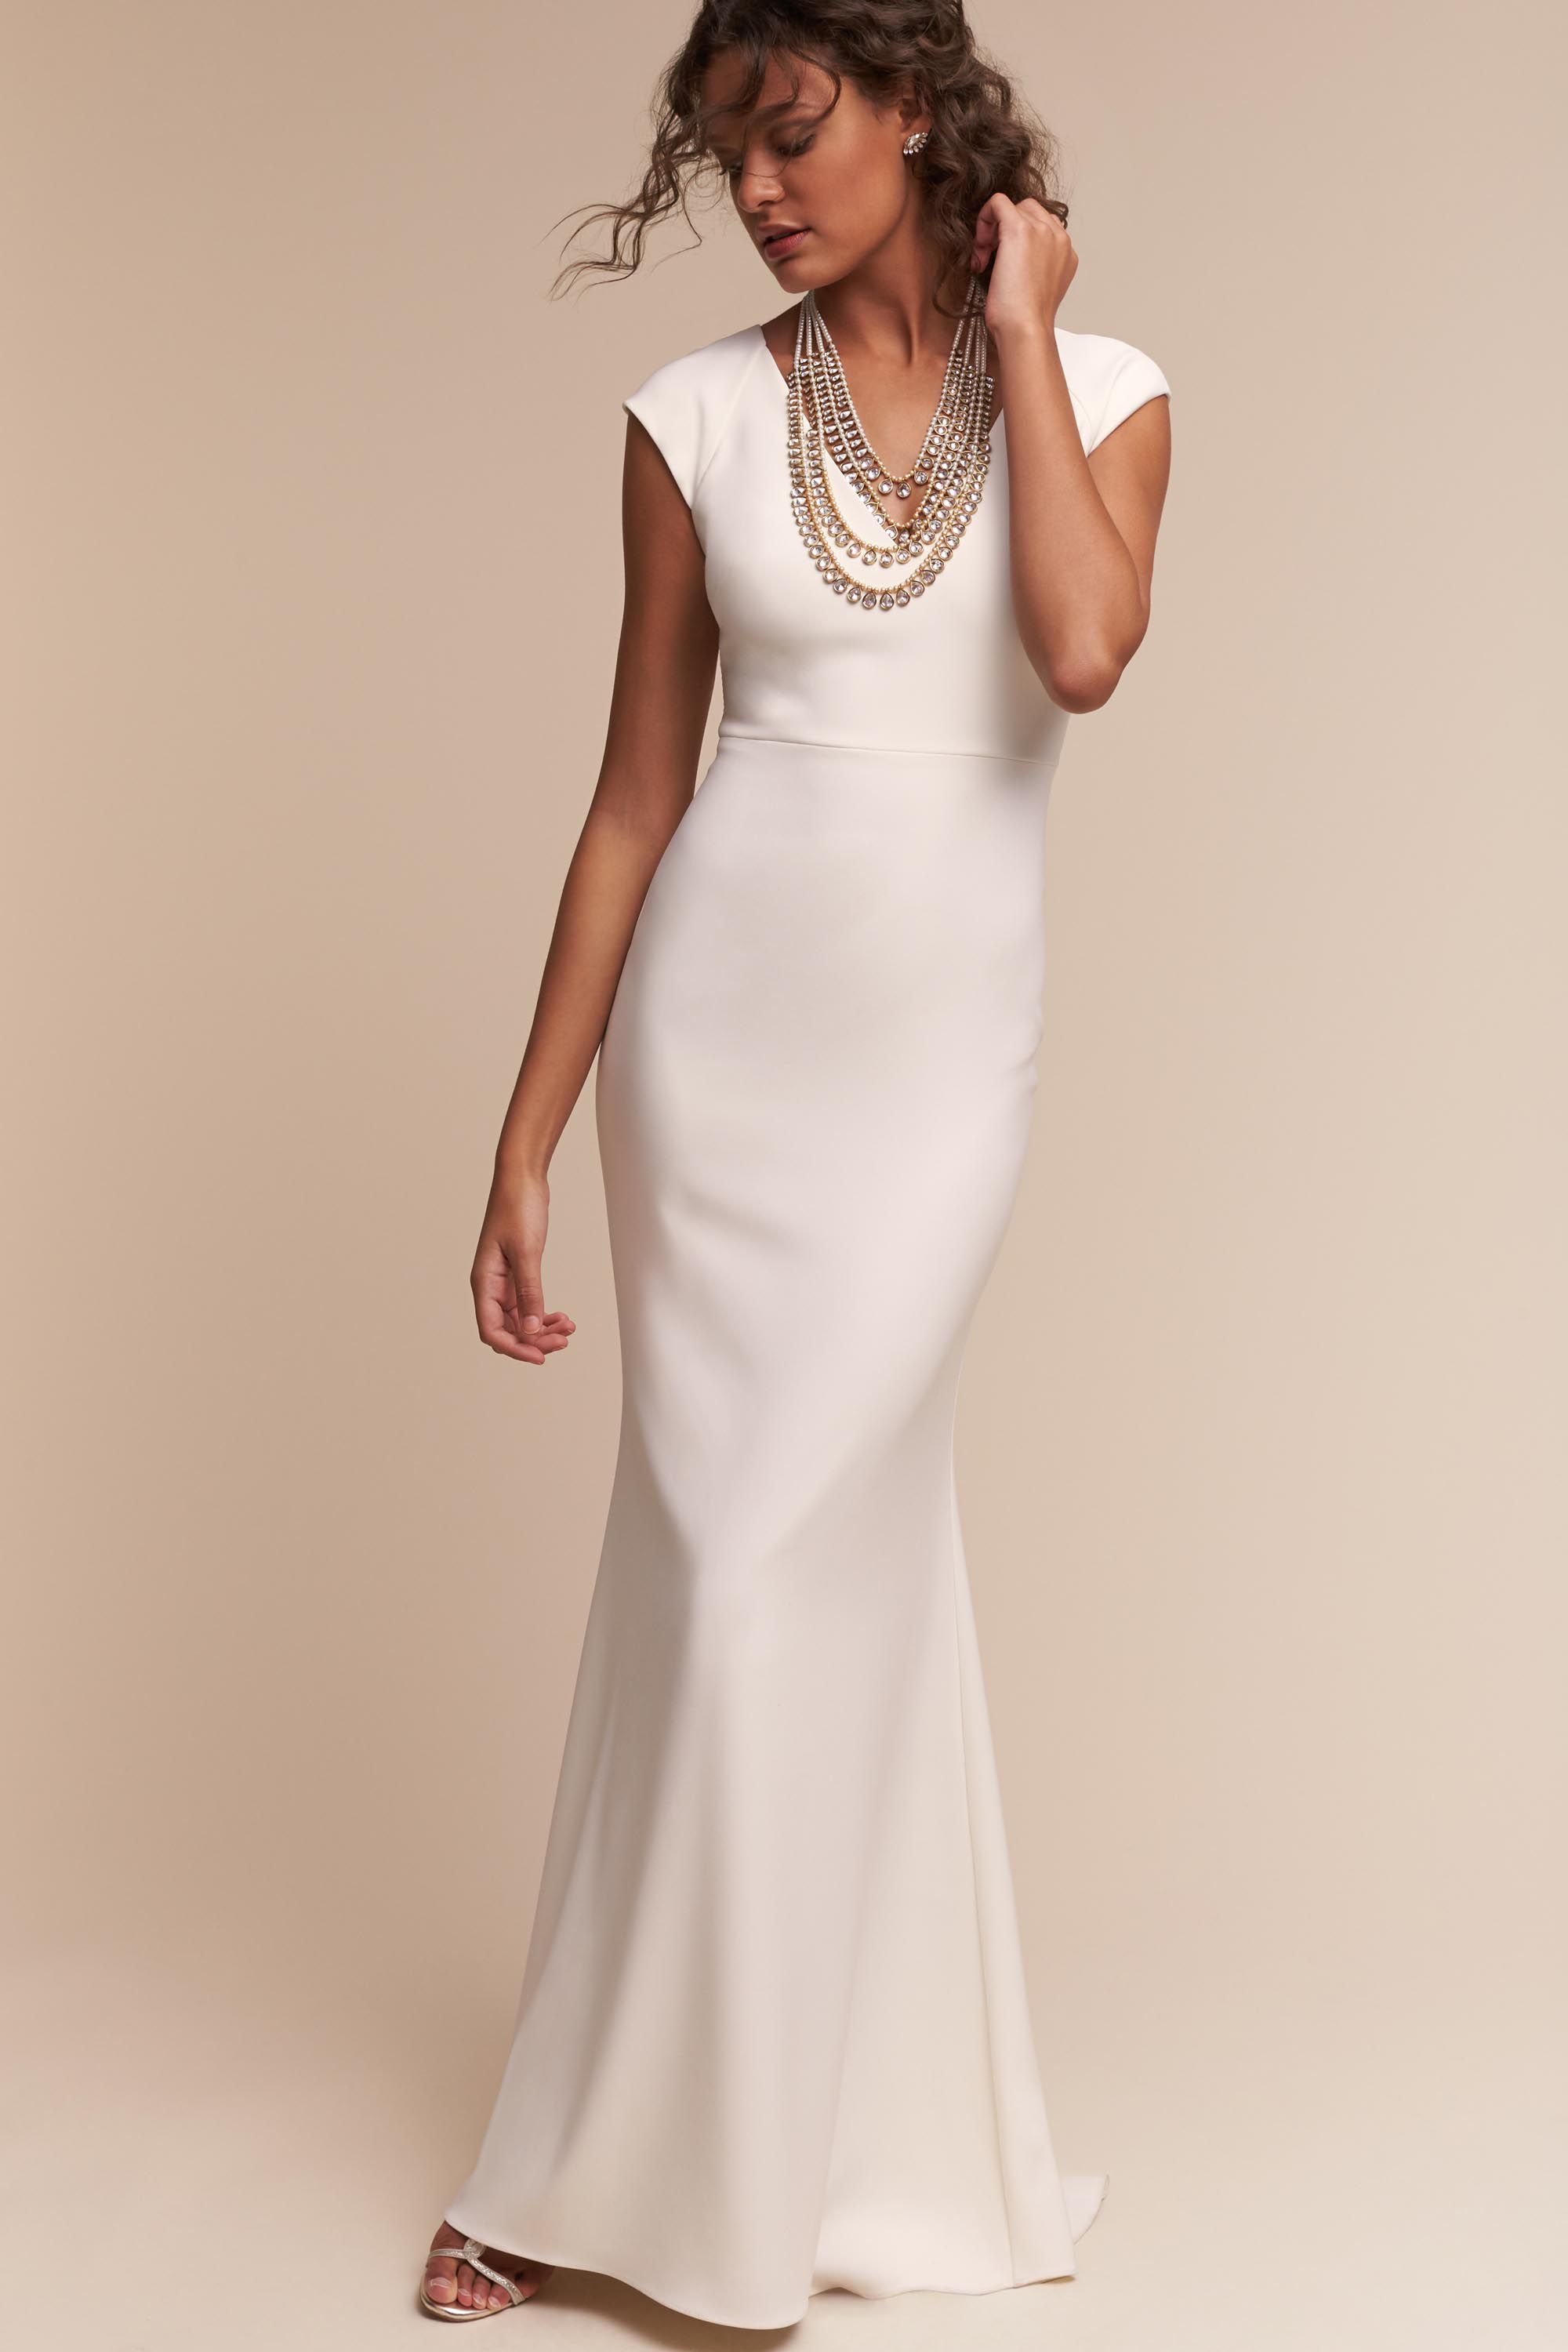 Too Expensive But SO PRETTY Sawyer Gown From BHLDN